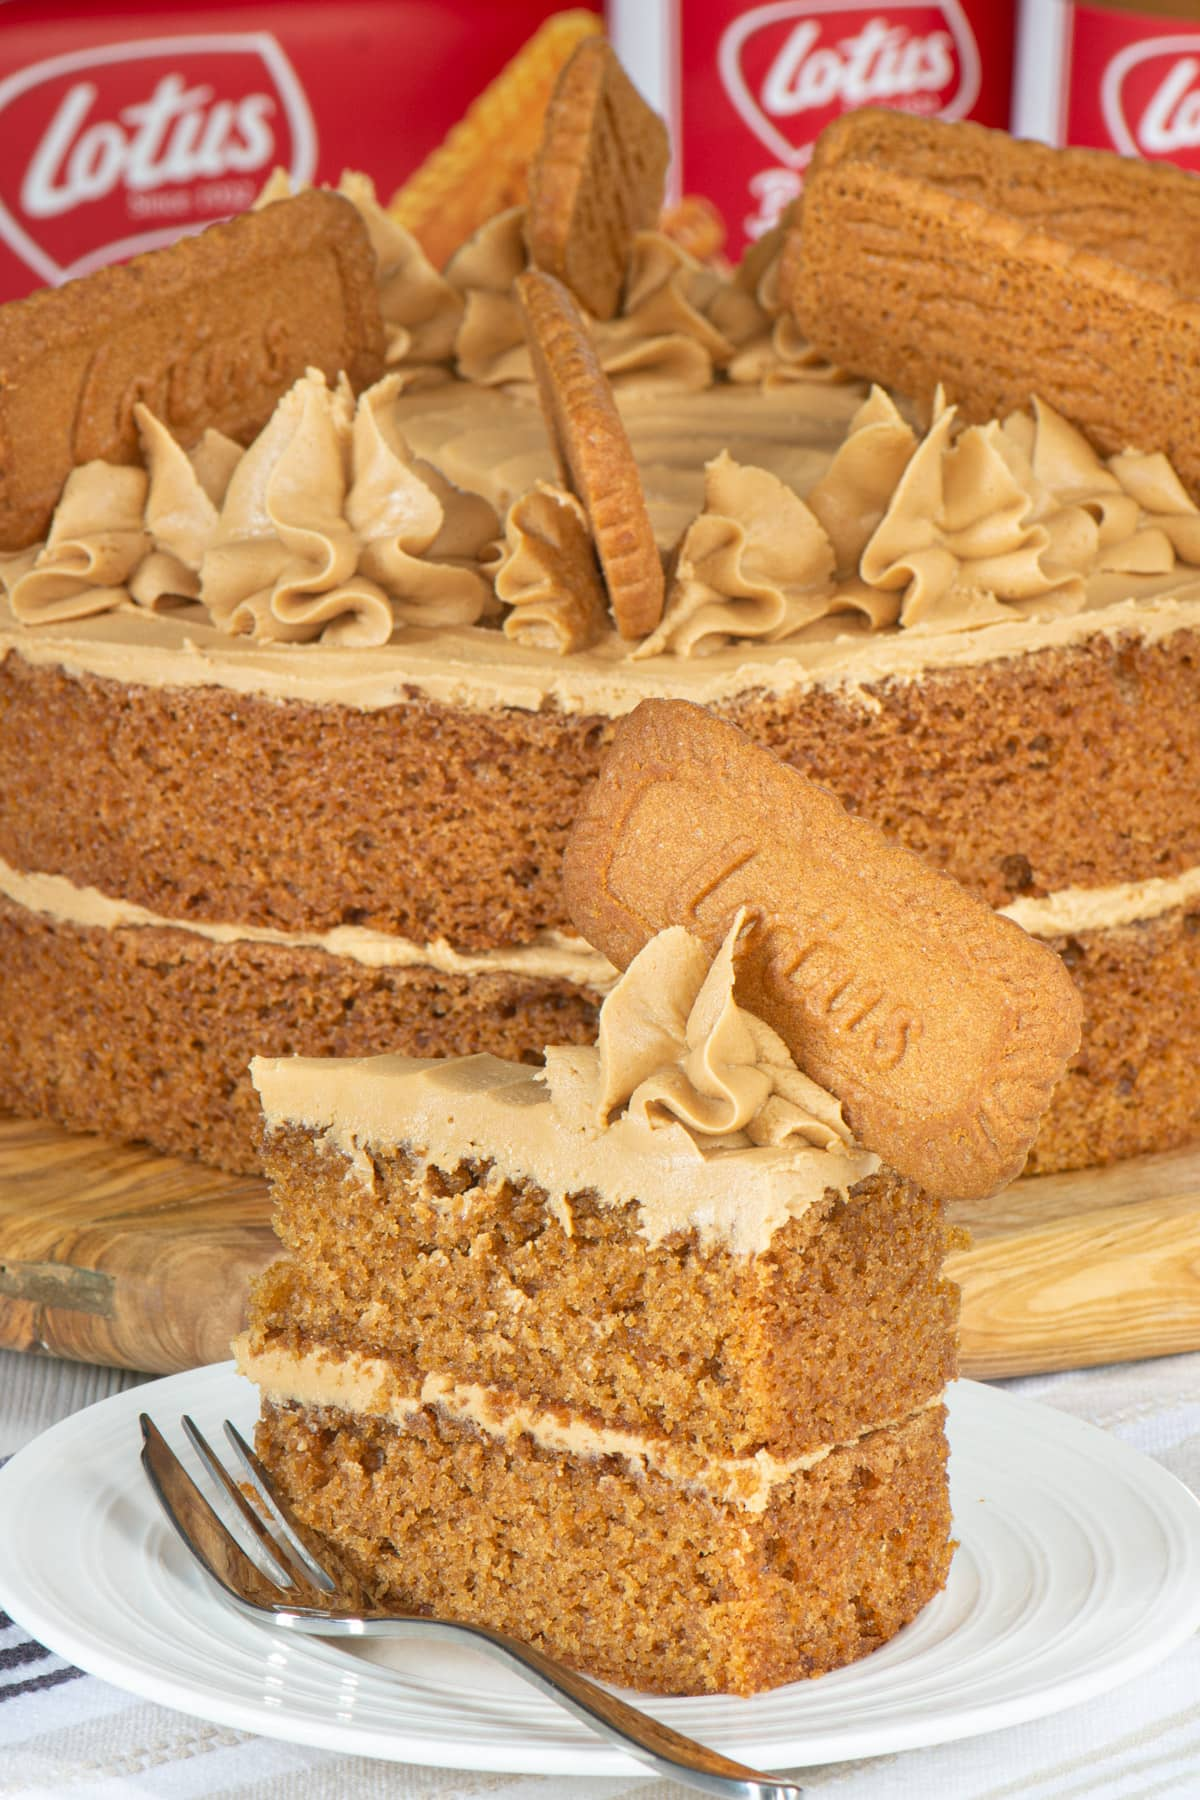 A slice of Biscoff cake with the remaining cake in the background.